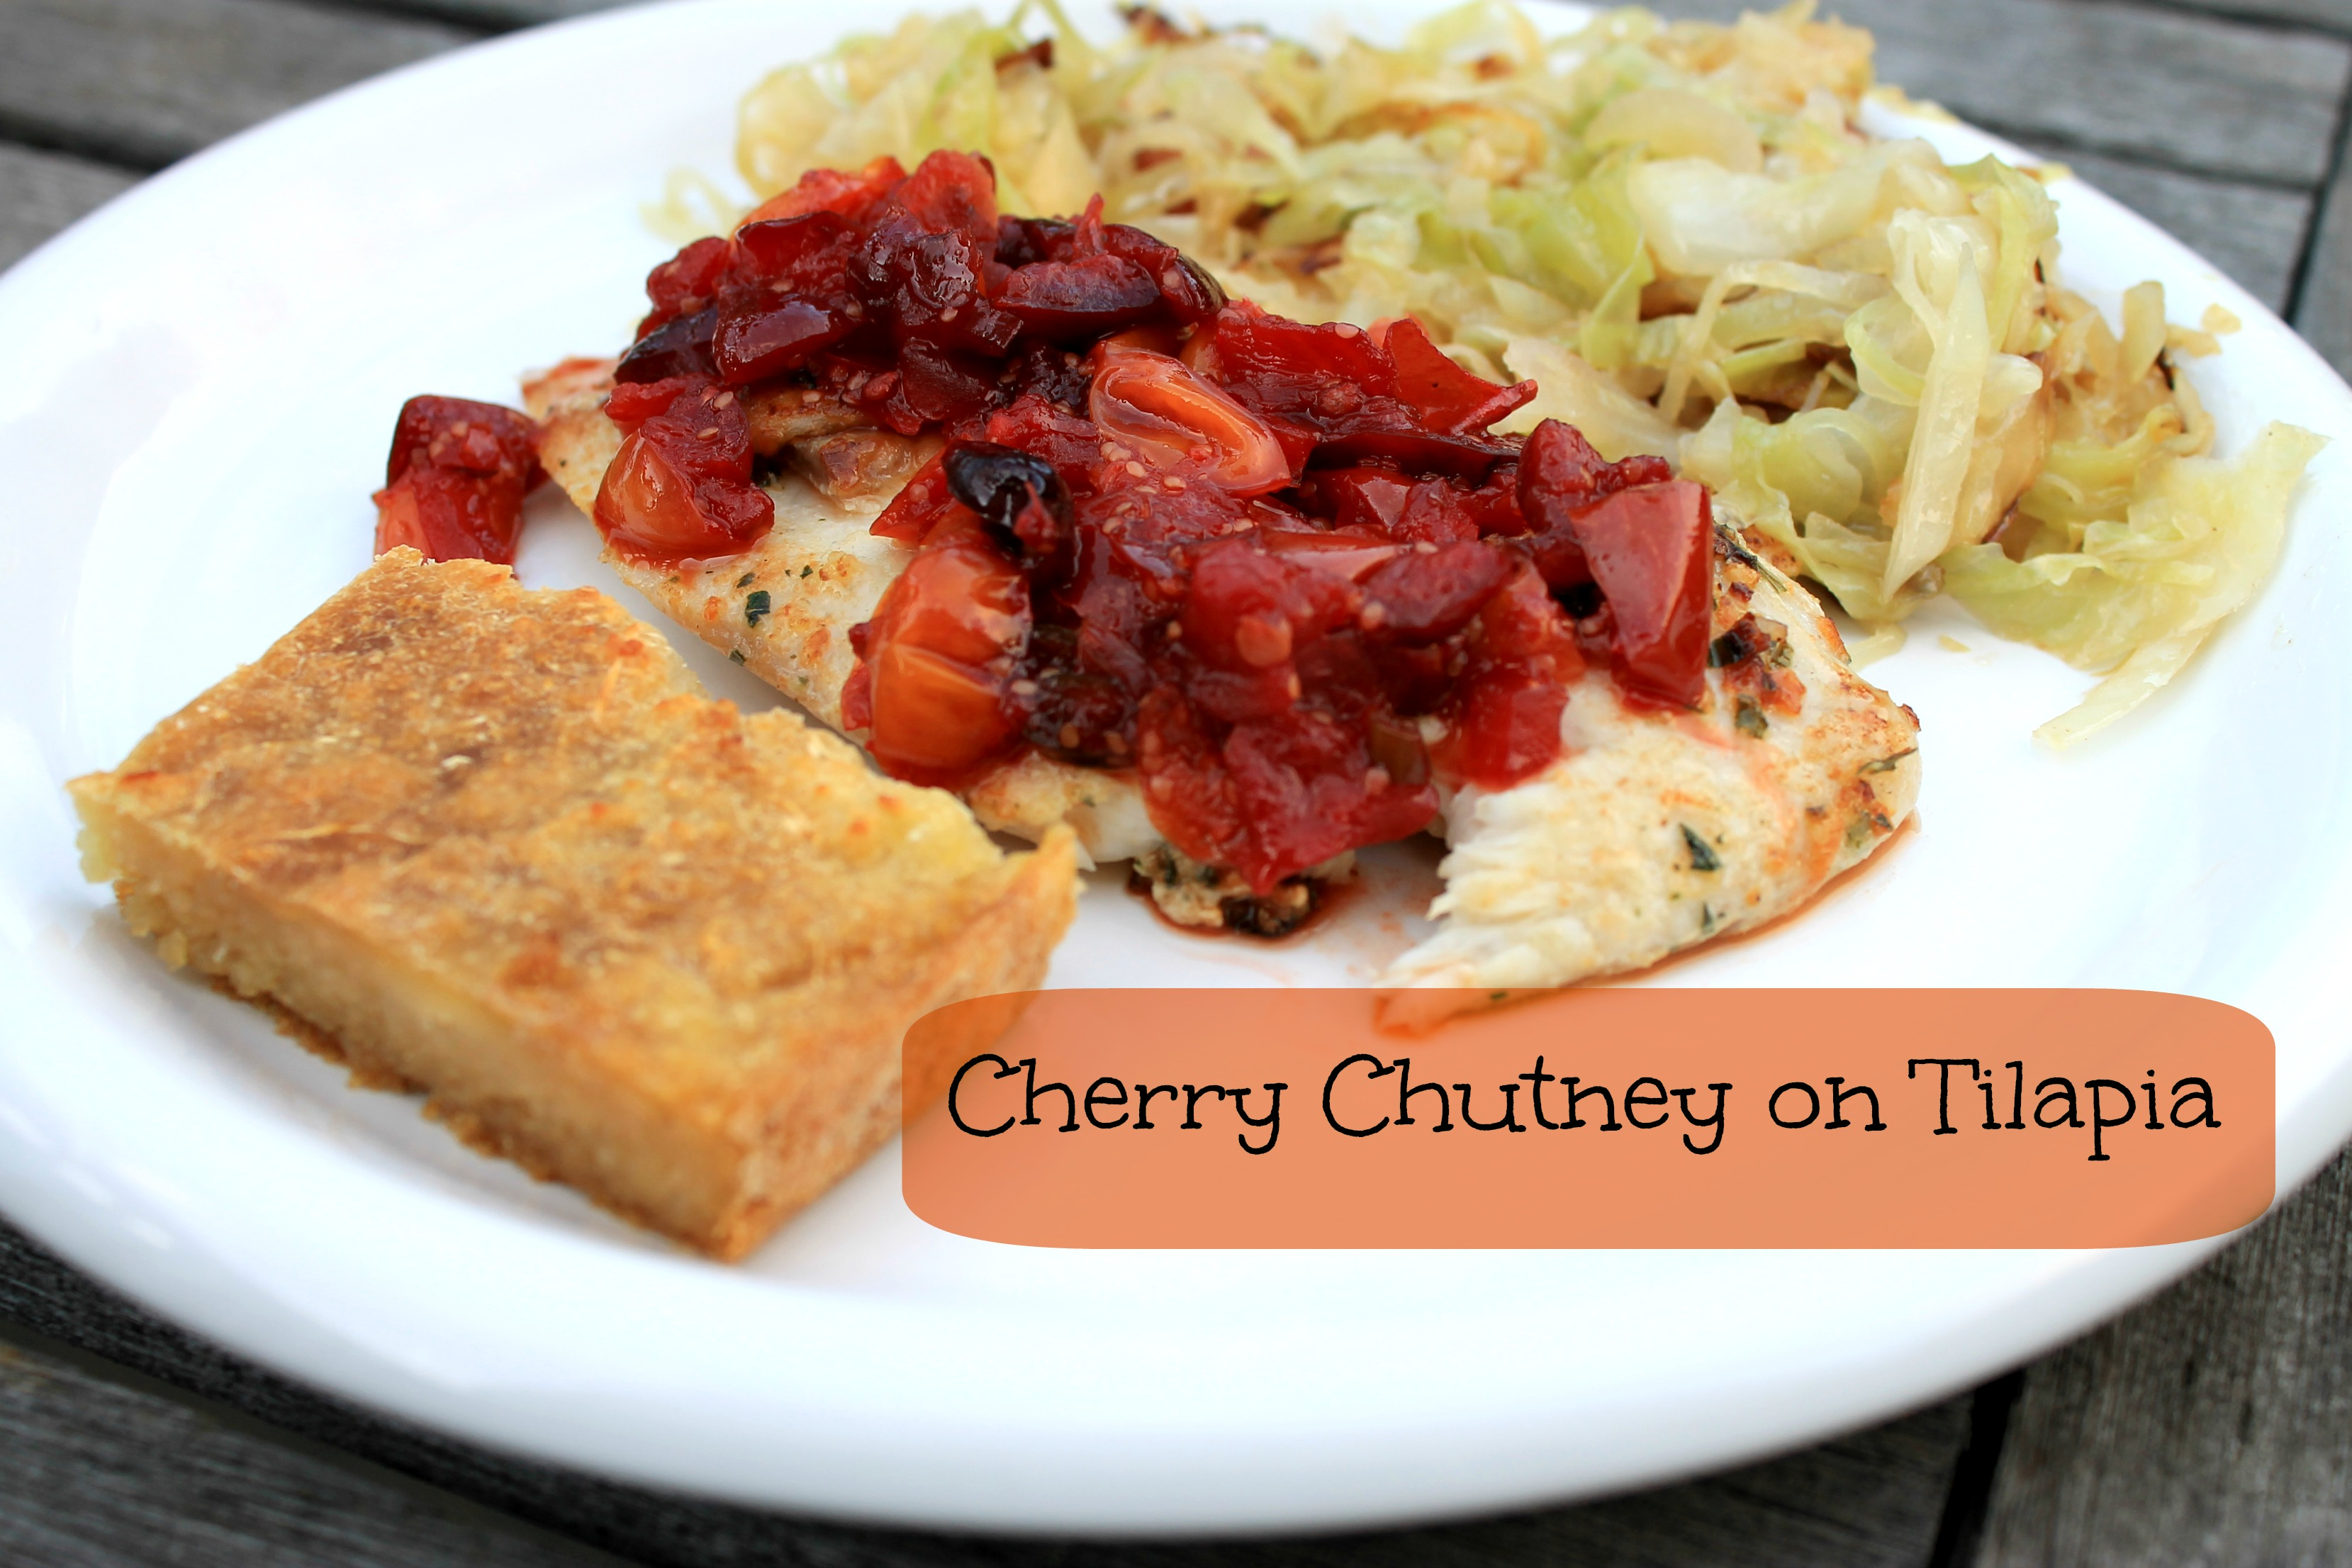 Cherry chutney with tilapia & cabbage